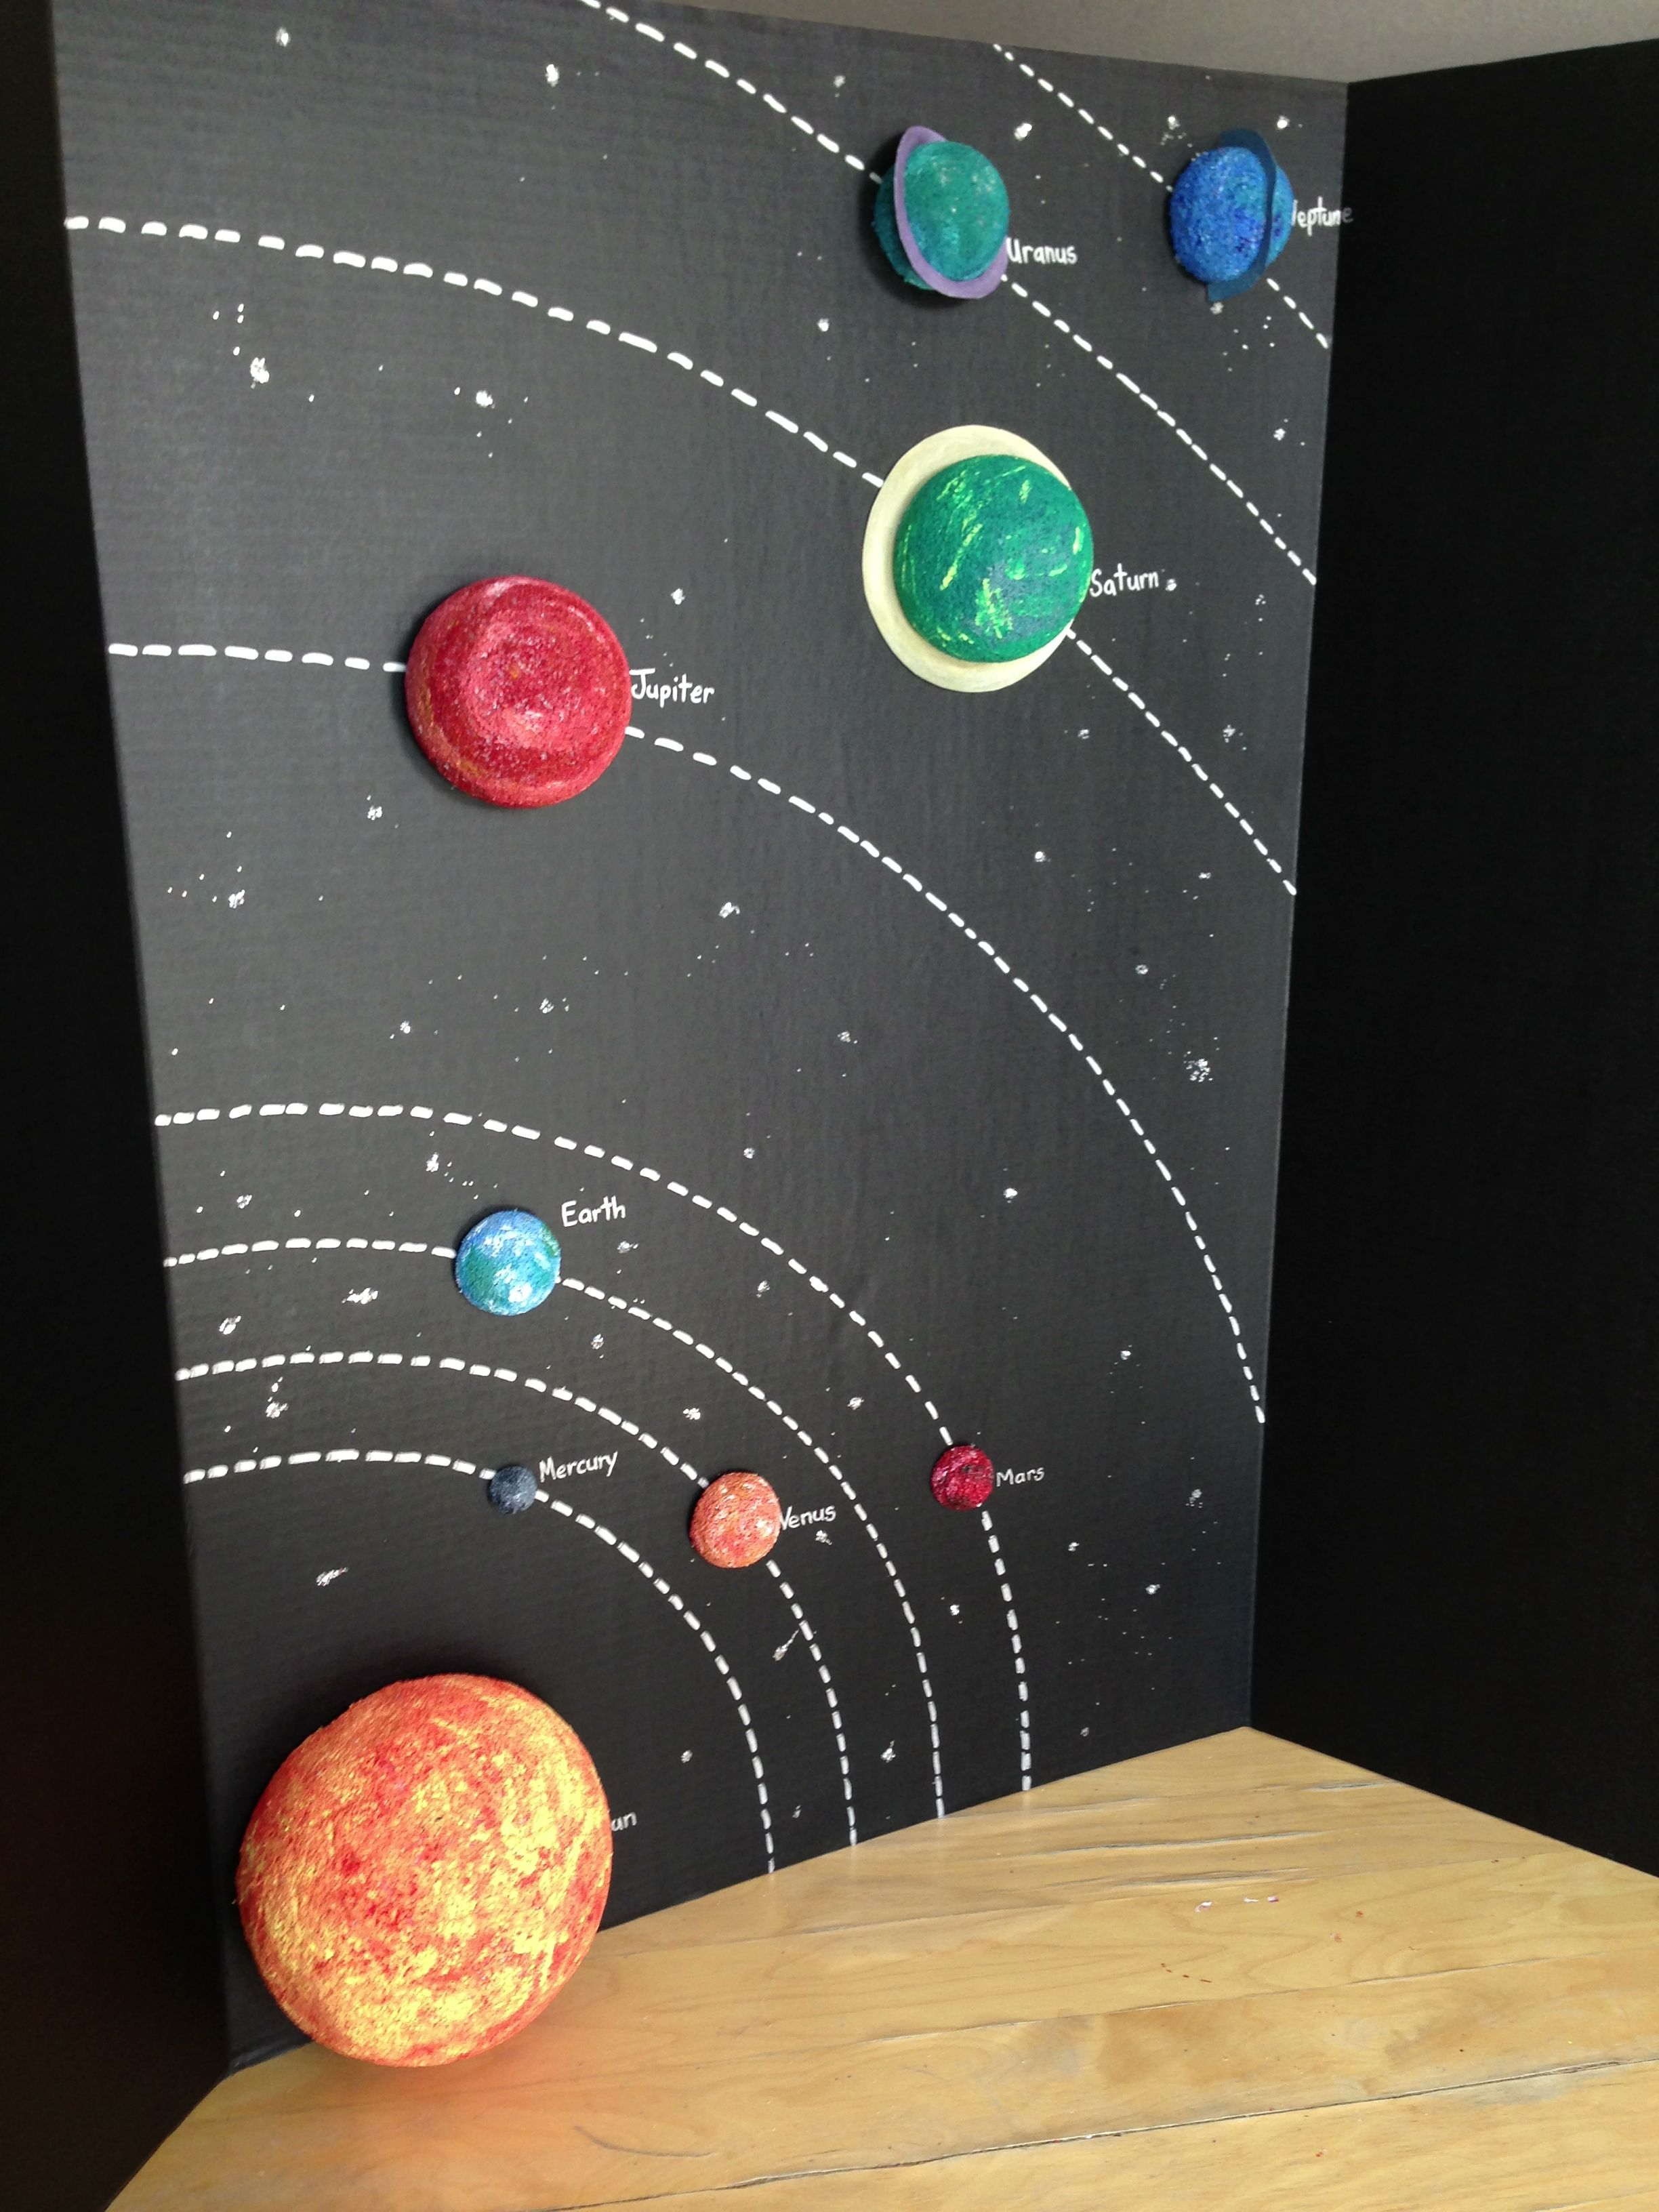 solar system project ideas - photo #3